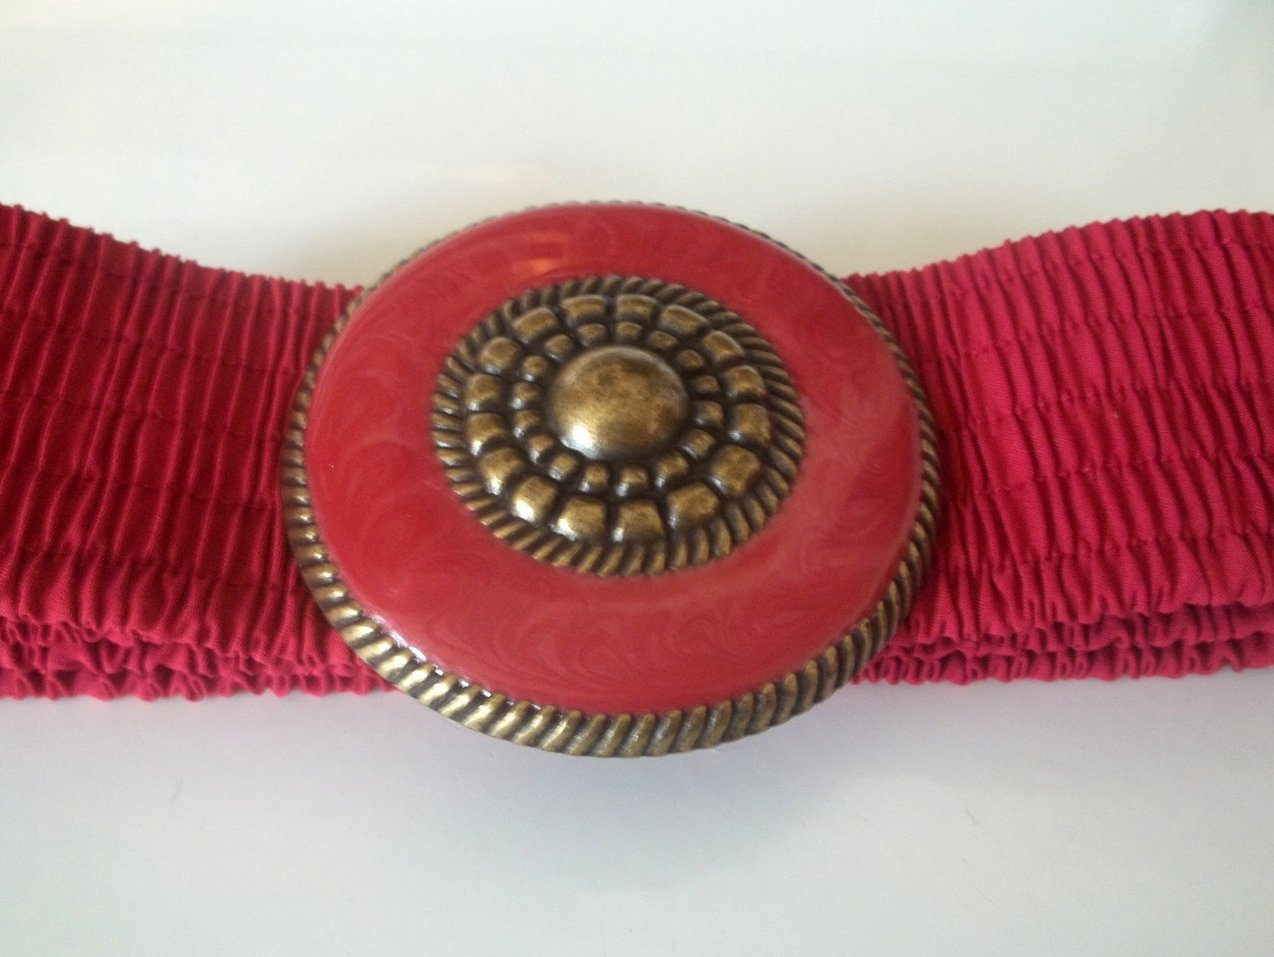 Vintage Ladies Fashion Stretch Belt Red Pink Gold Medallion 32 x 2